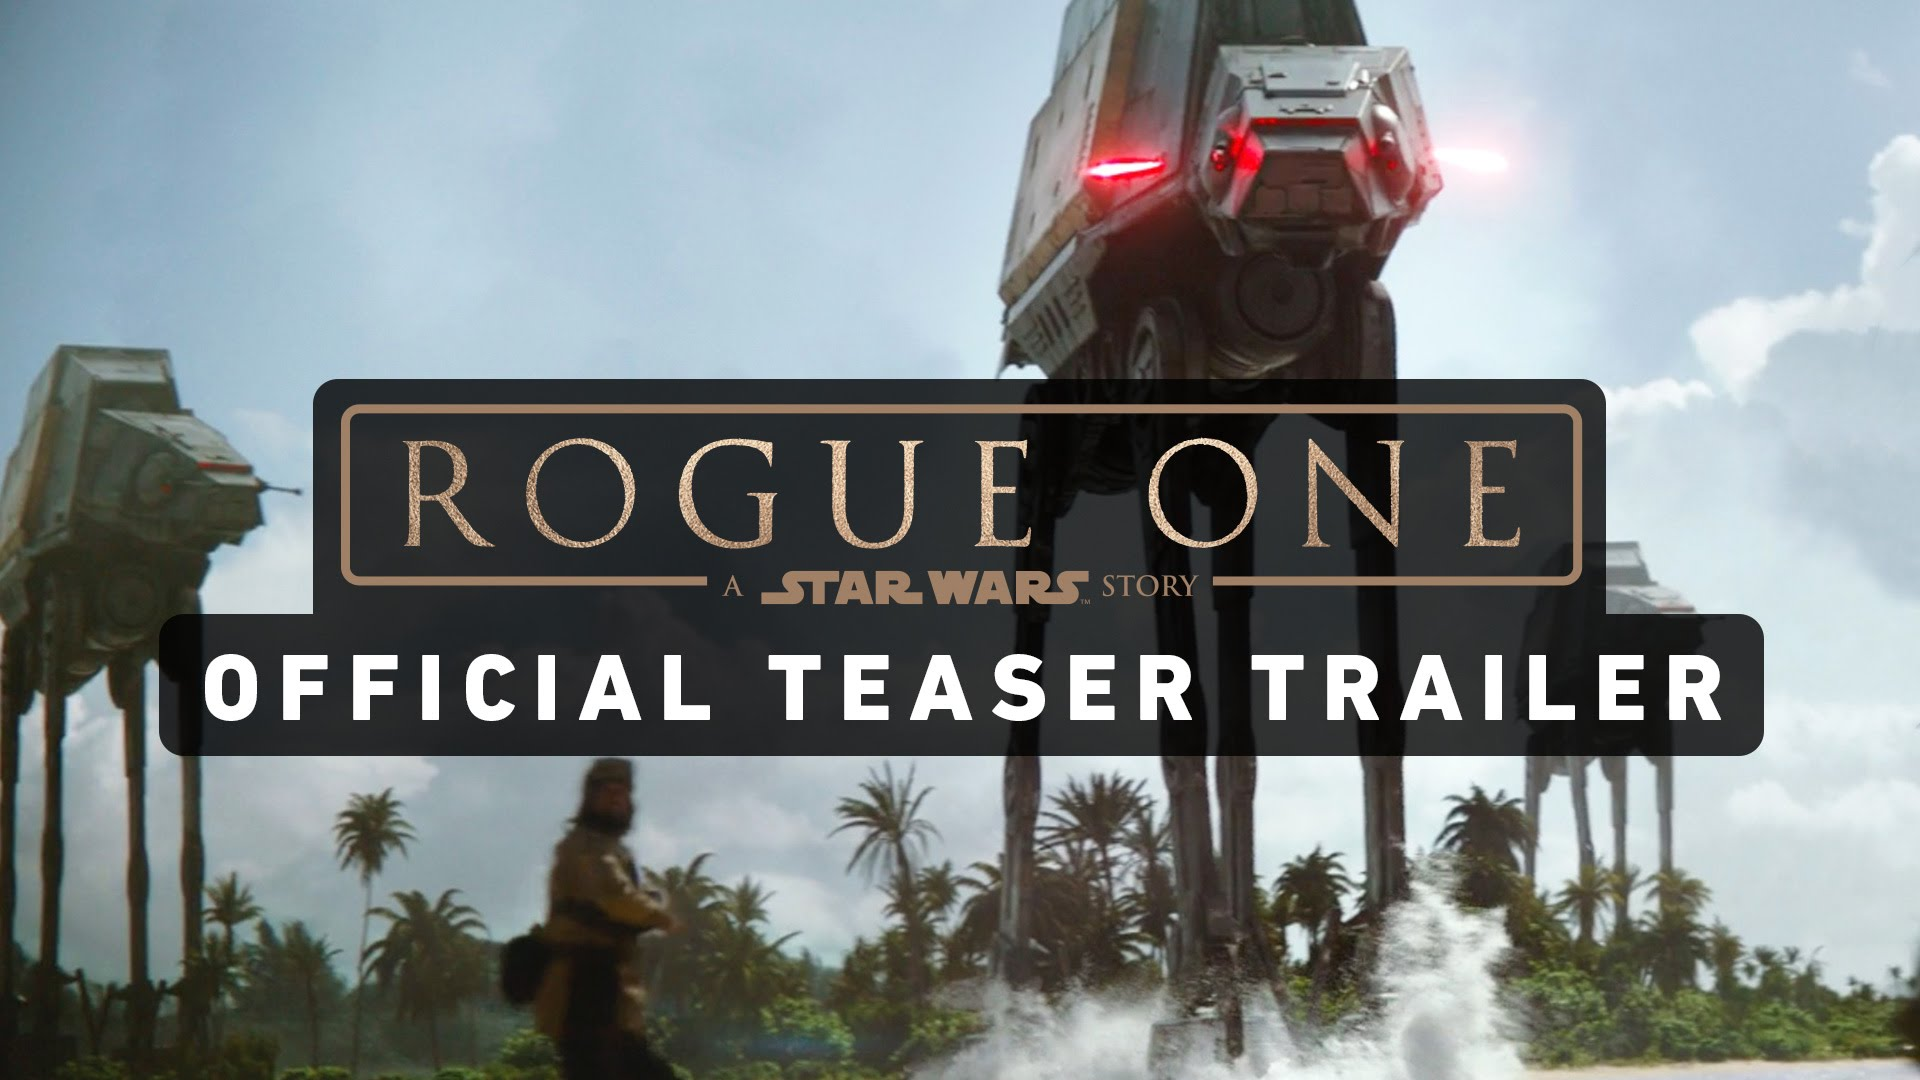 VIDEO: Glazba iz filma 'Rogue One: A Star Wars Story'